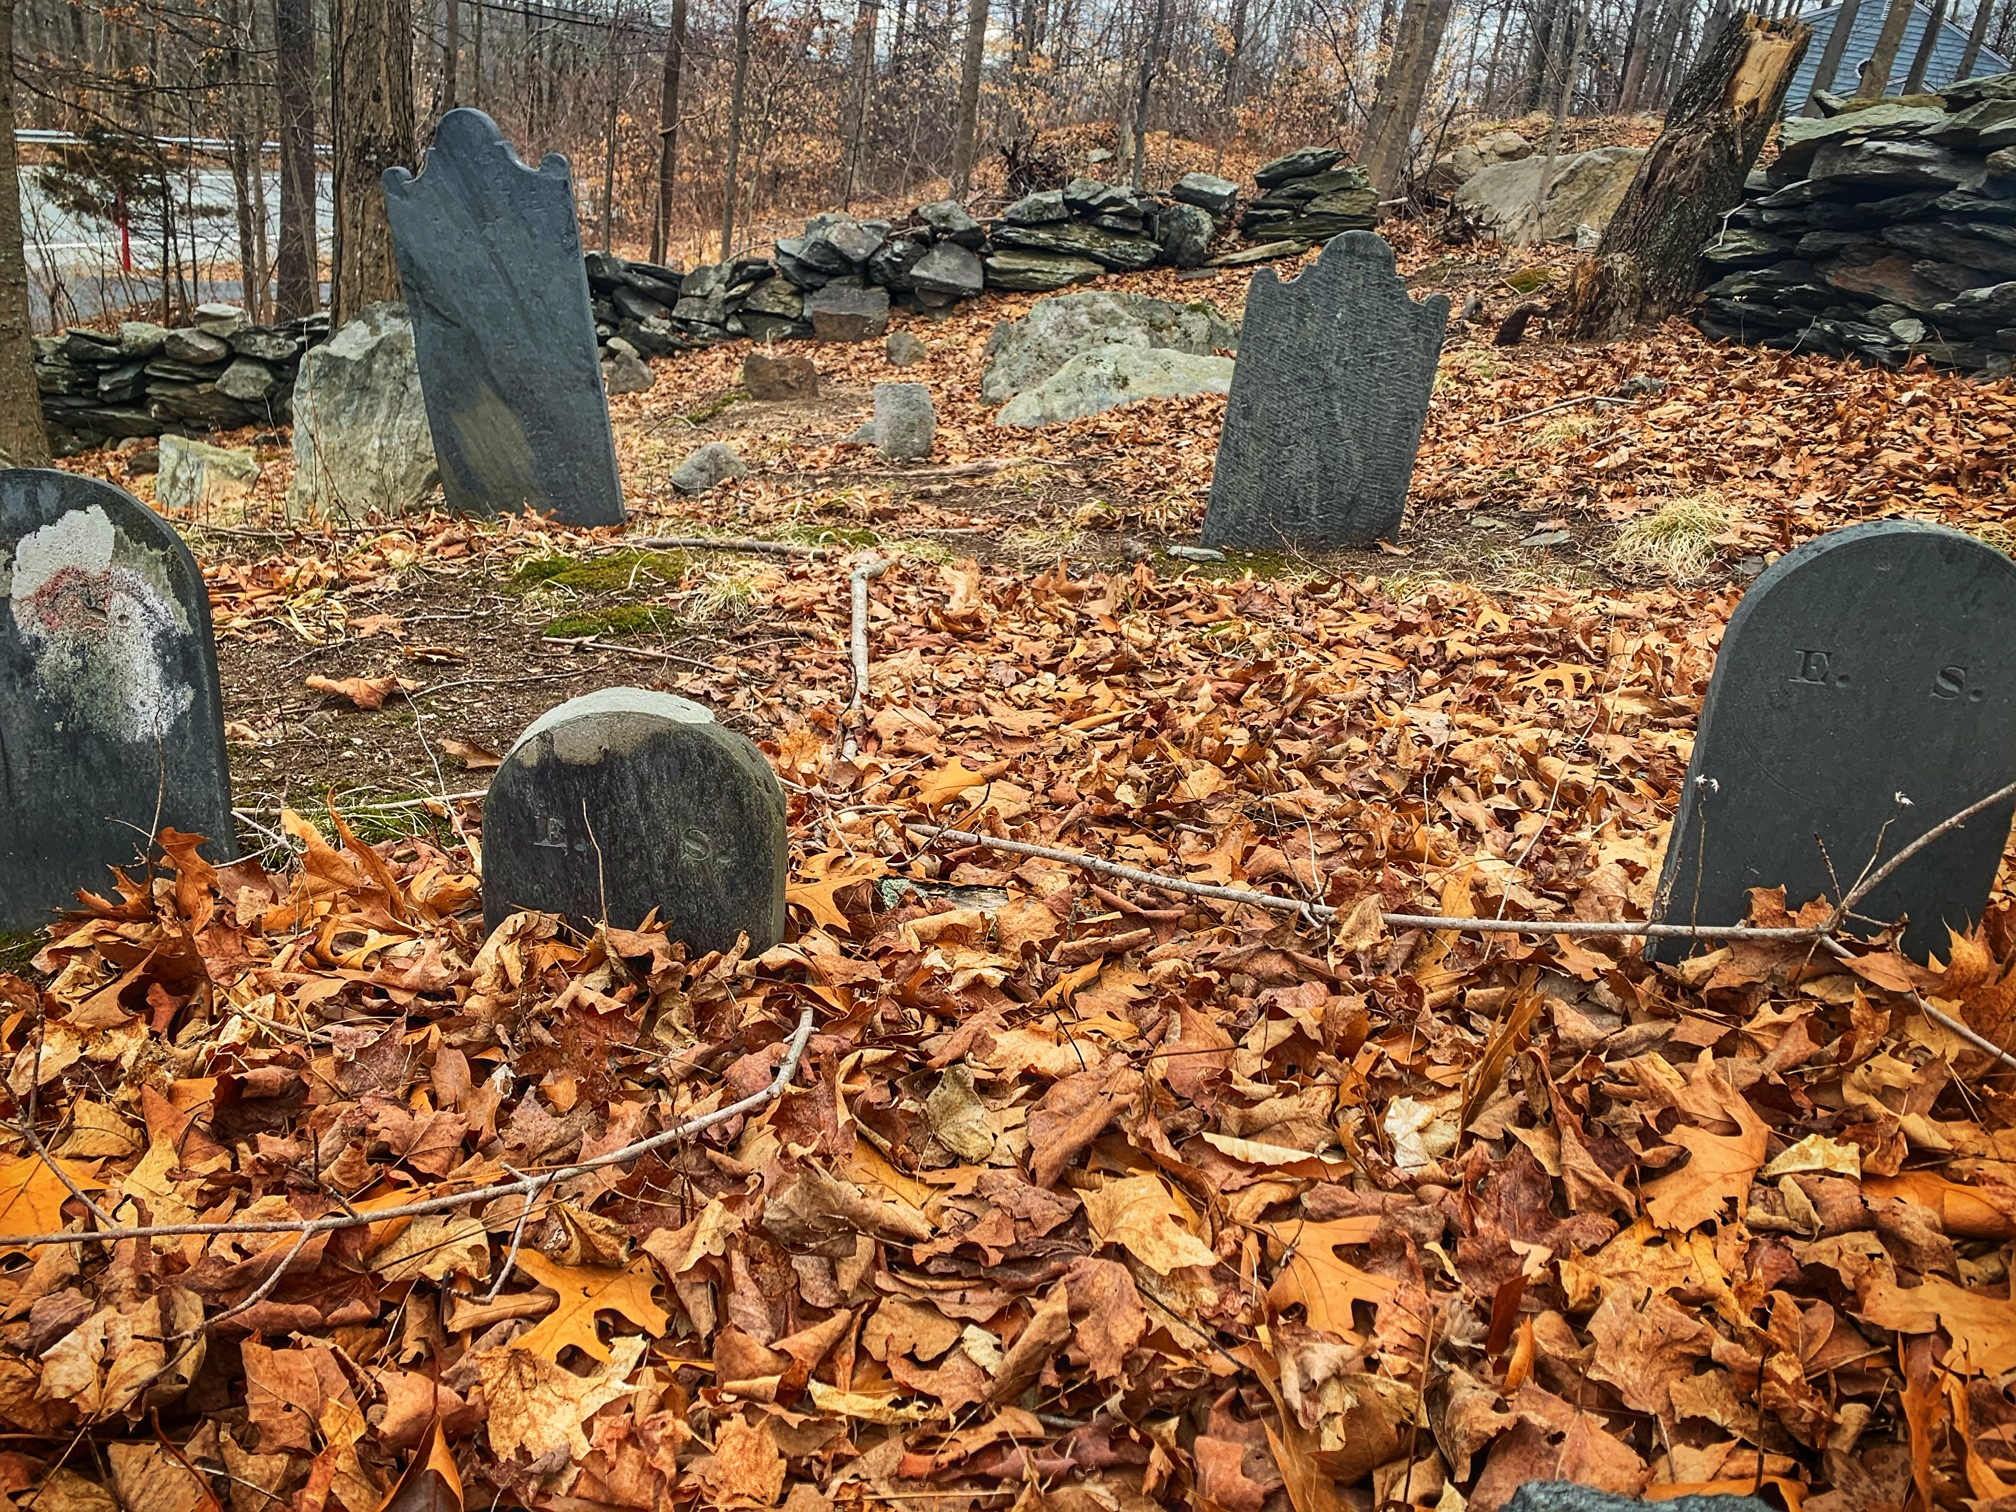 Staples Family graves in Cumberland. Abigail Staples lies buried somewhere nearby. Photo by Jeff Belanger.